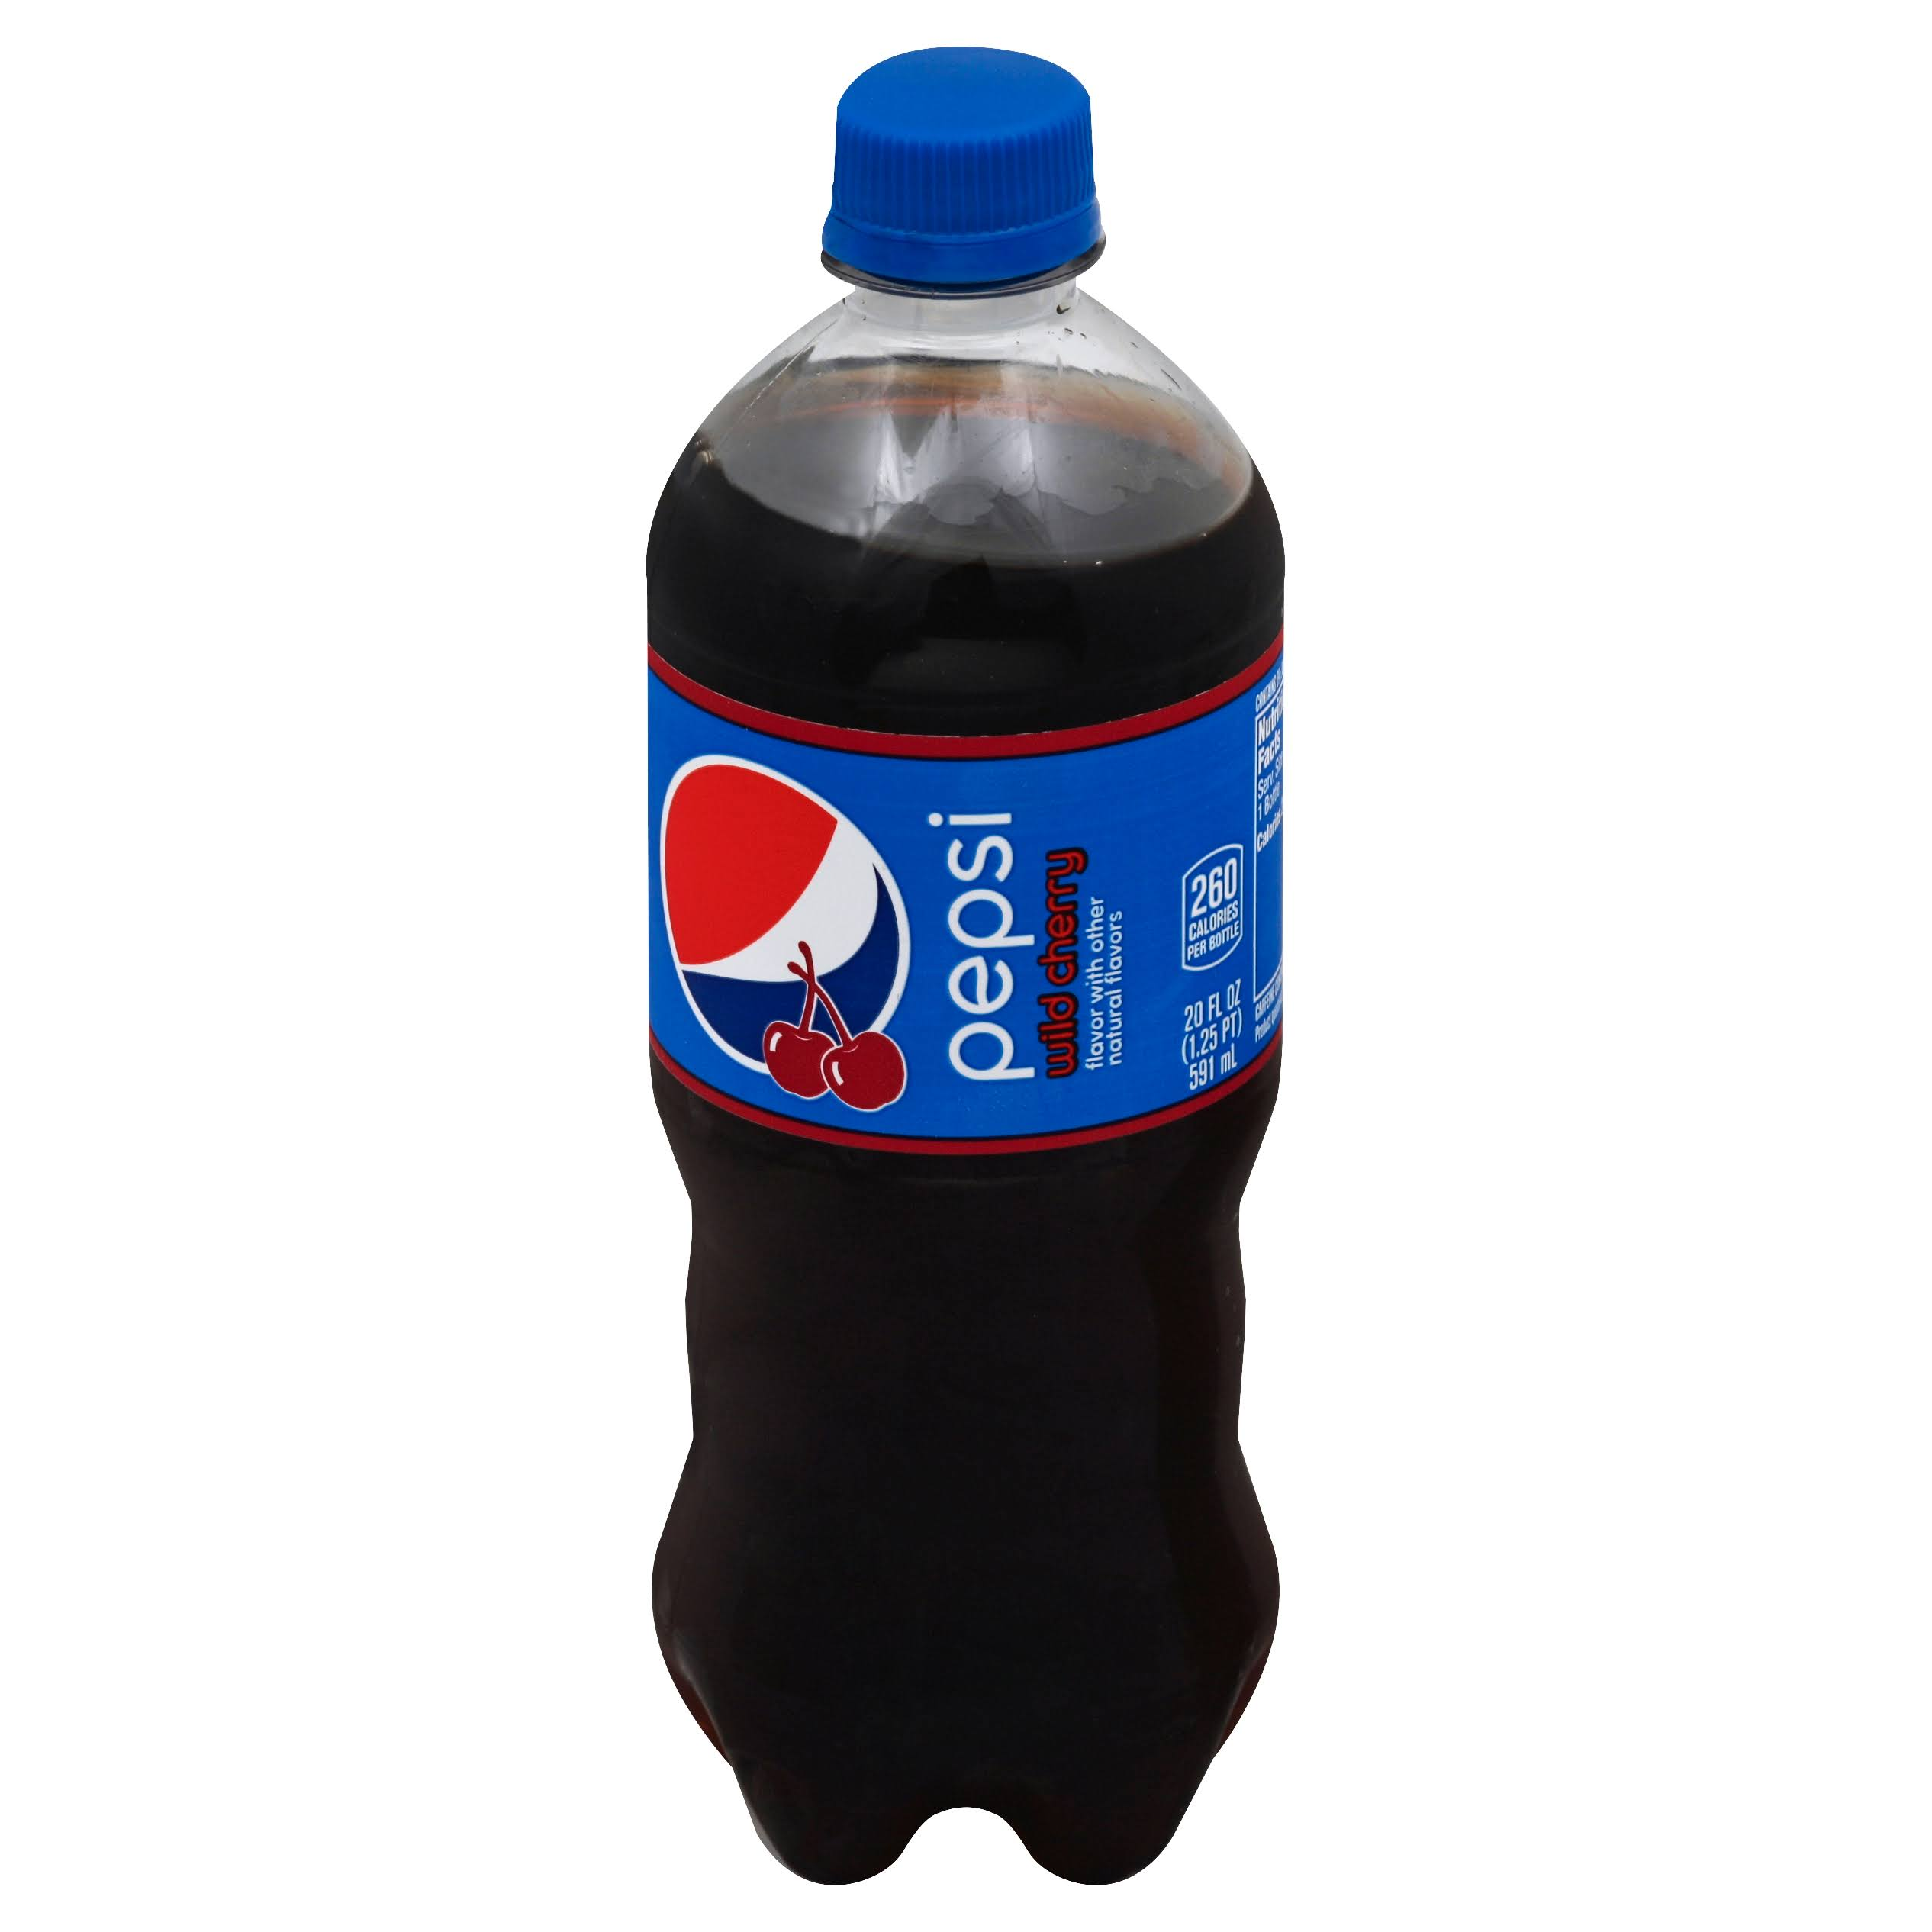 Pepsi Wild Cherry Cola - 20 oz